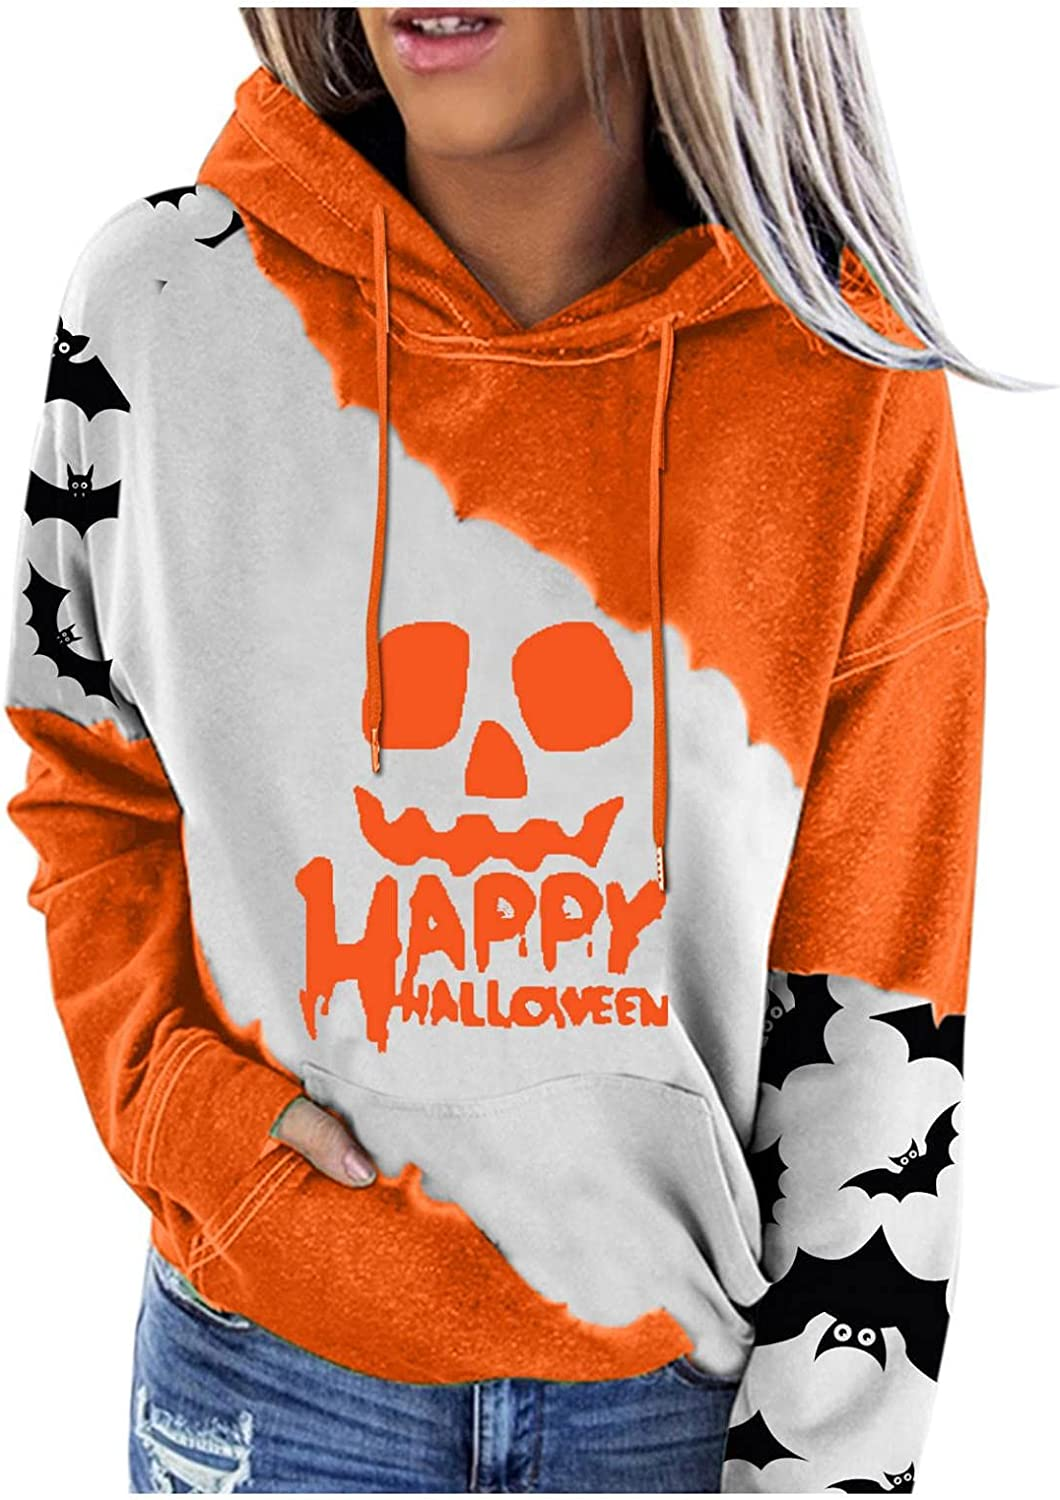 Halloween Sweatshirts for Women, Womens Casual Solid Color Long Sleeve Ribbed Pullover Hoodie Sweatshirt Tops with Pockets